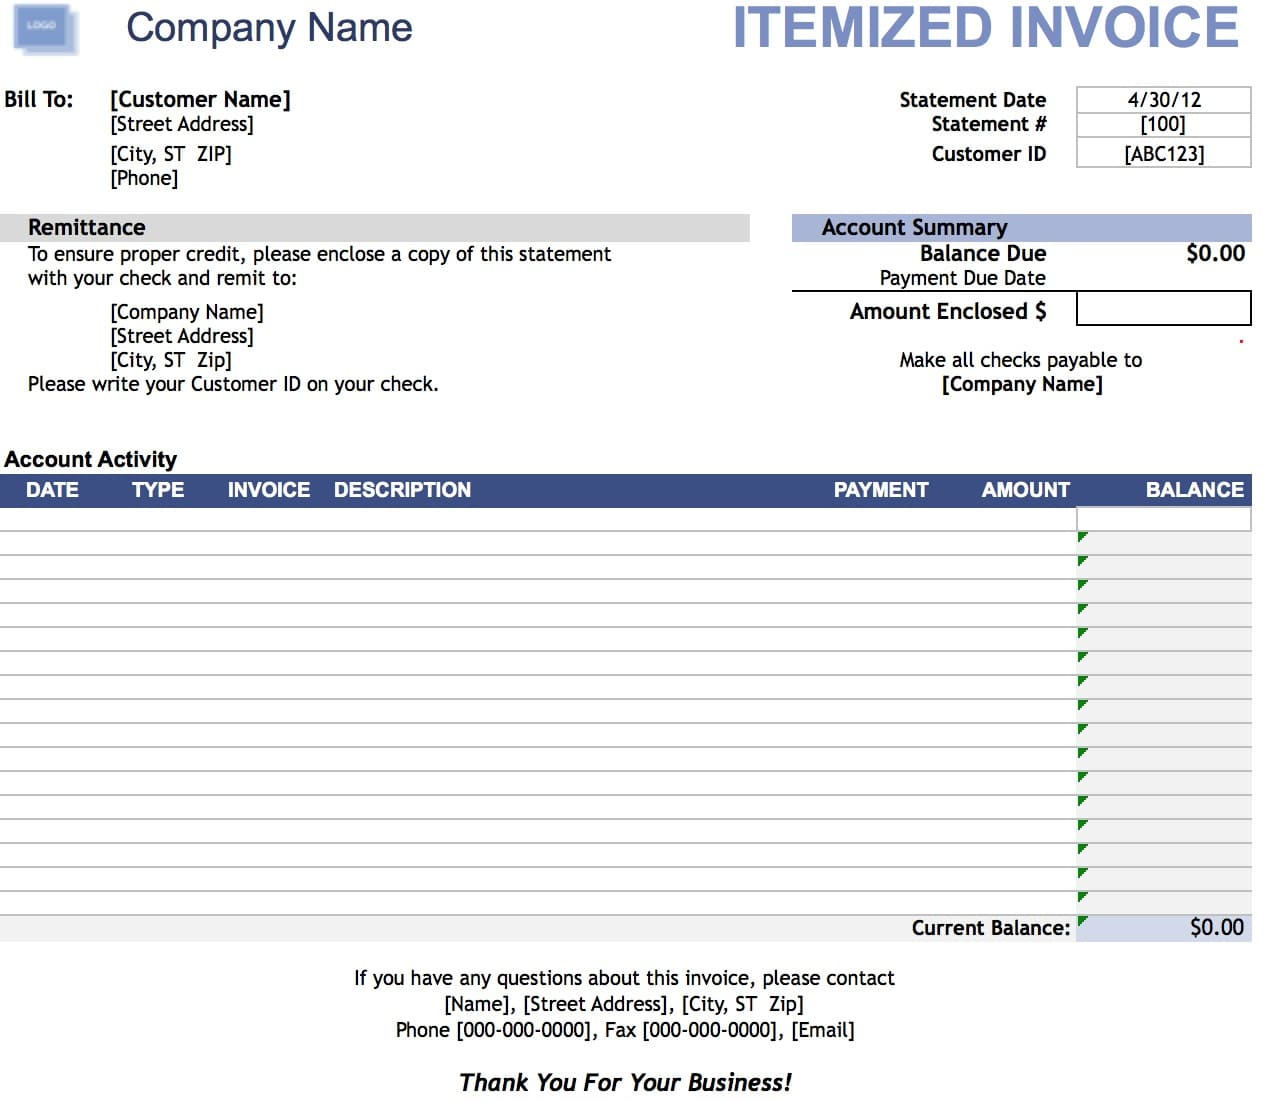 Free Itemized Invoice Template Excel PDF Word Doc - Free billing invoice templates for service business